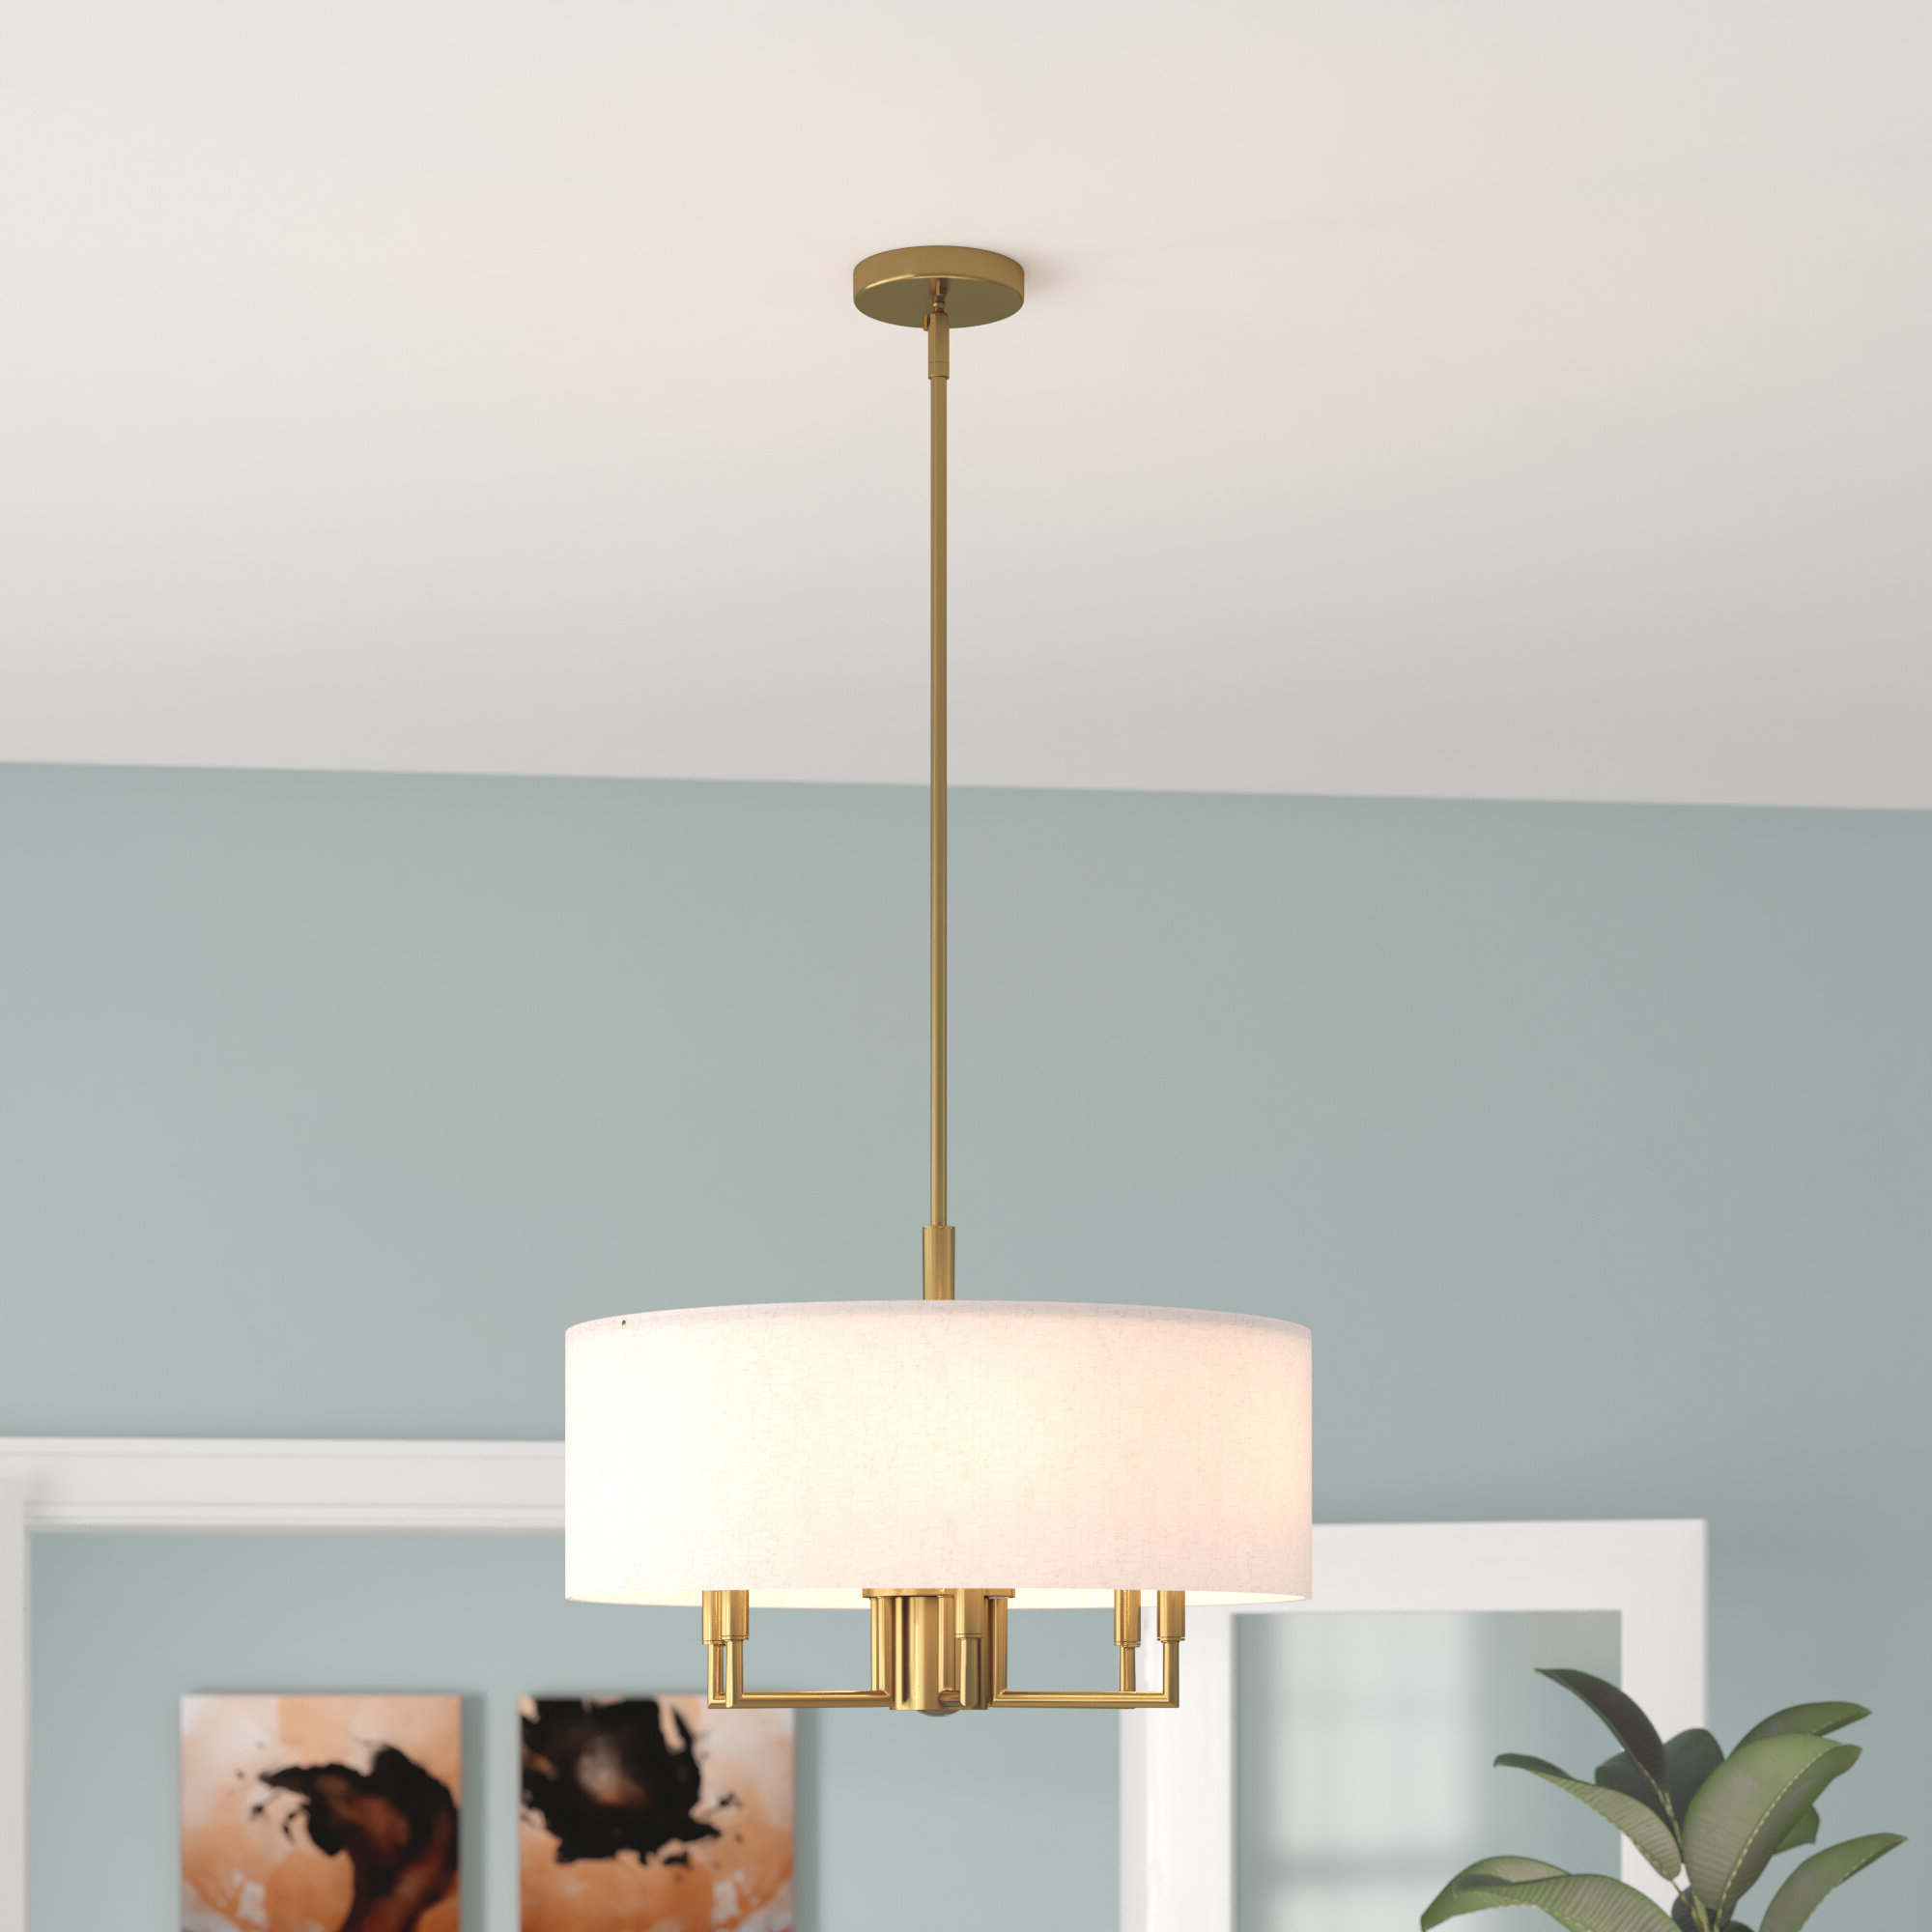 2020 Alina 5 Light Drum Chandeliers Throughout Ivy Bronx Alina 6 Light Drum Chandelier & Reviews (View 11 of 25)